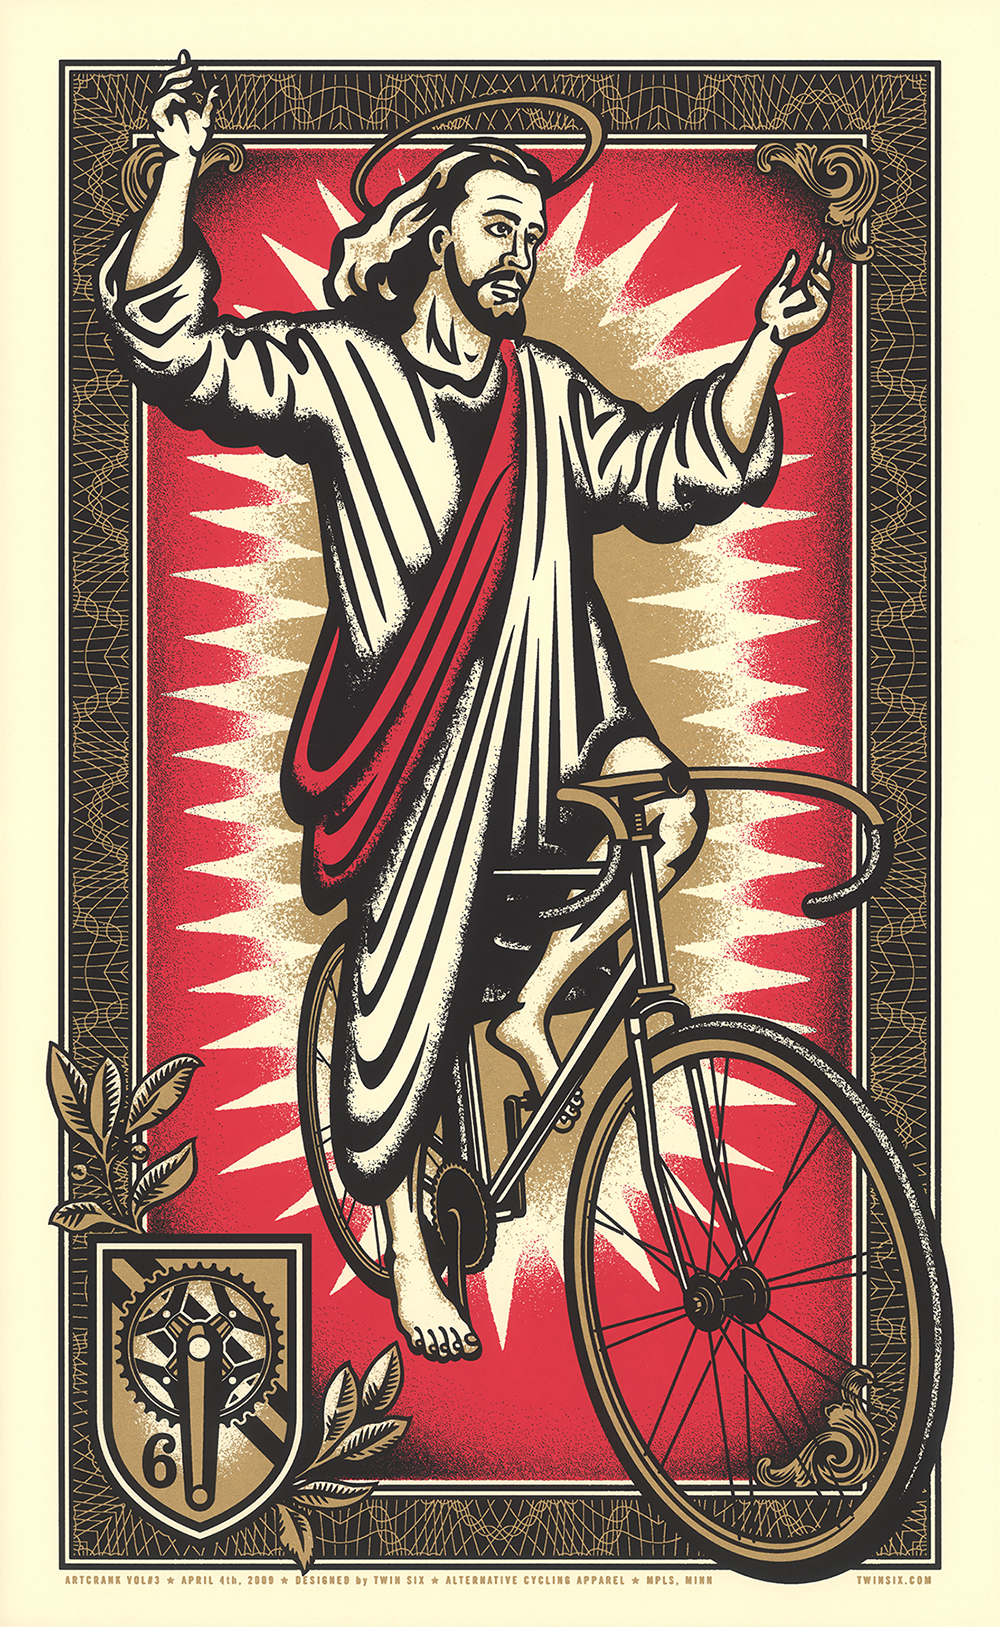 On the Third Day, He Rode